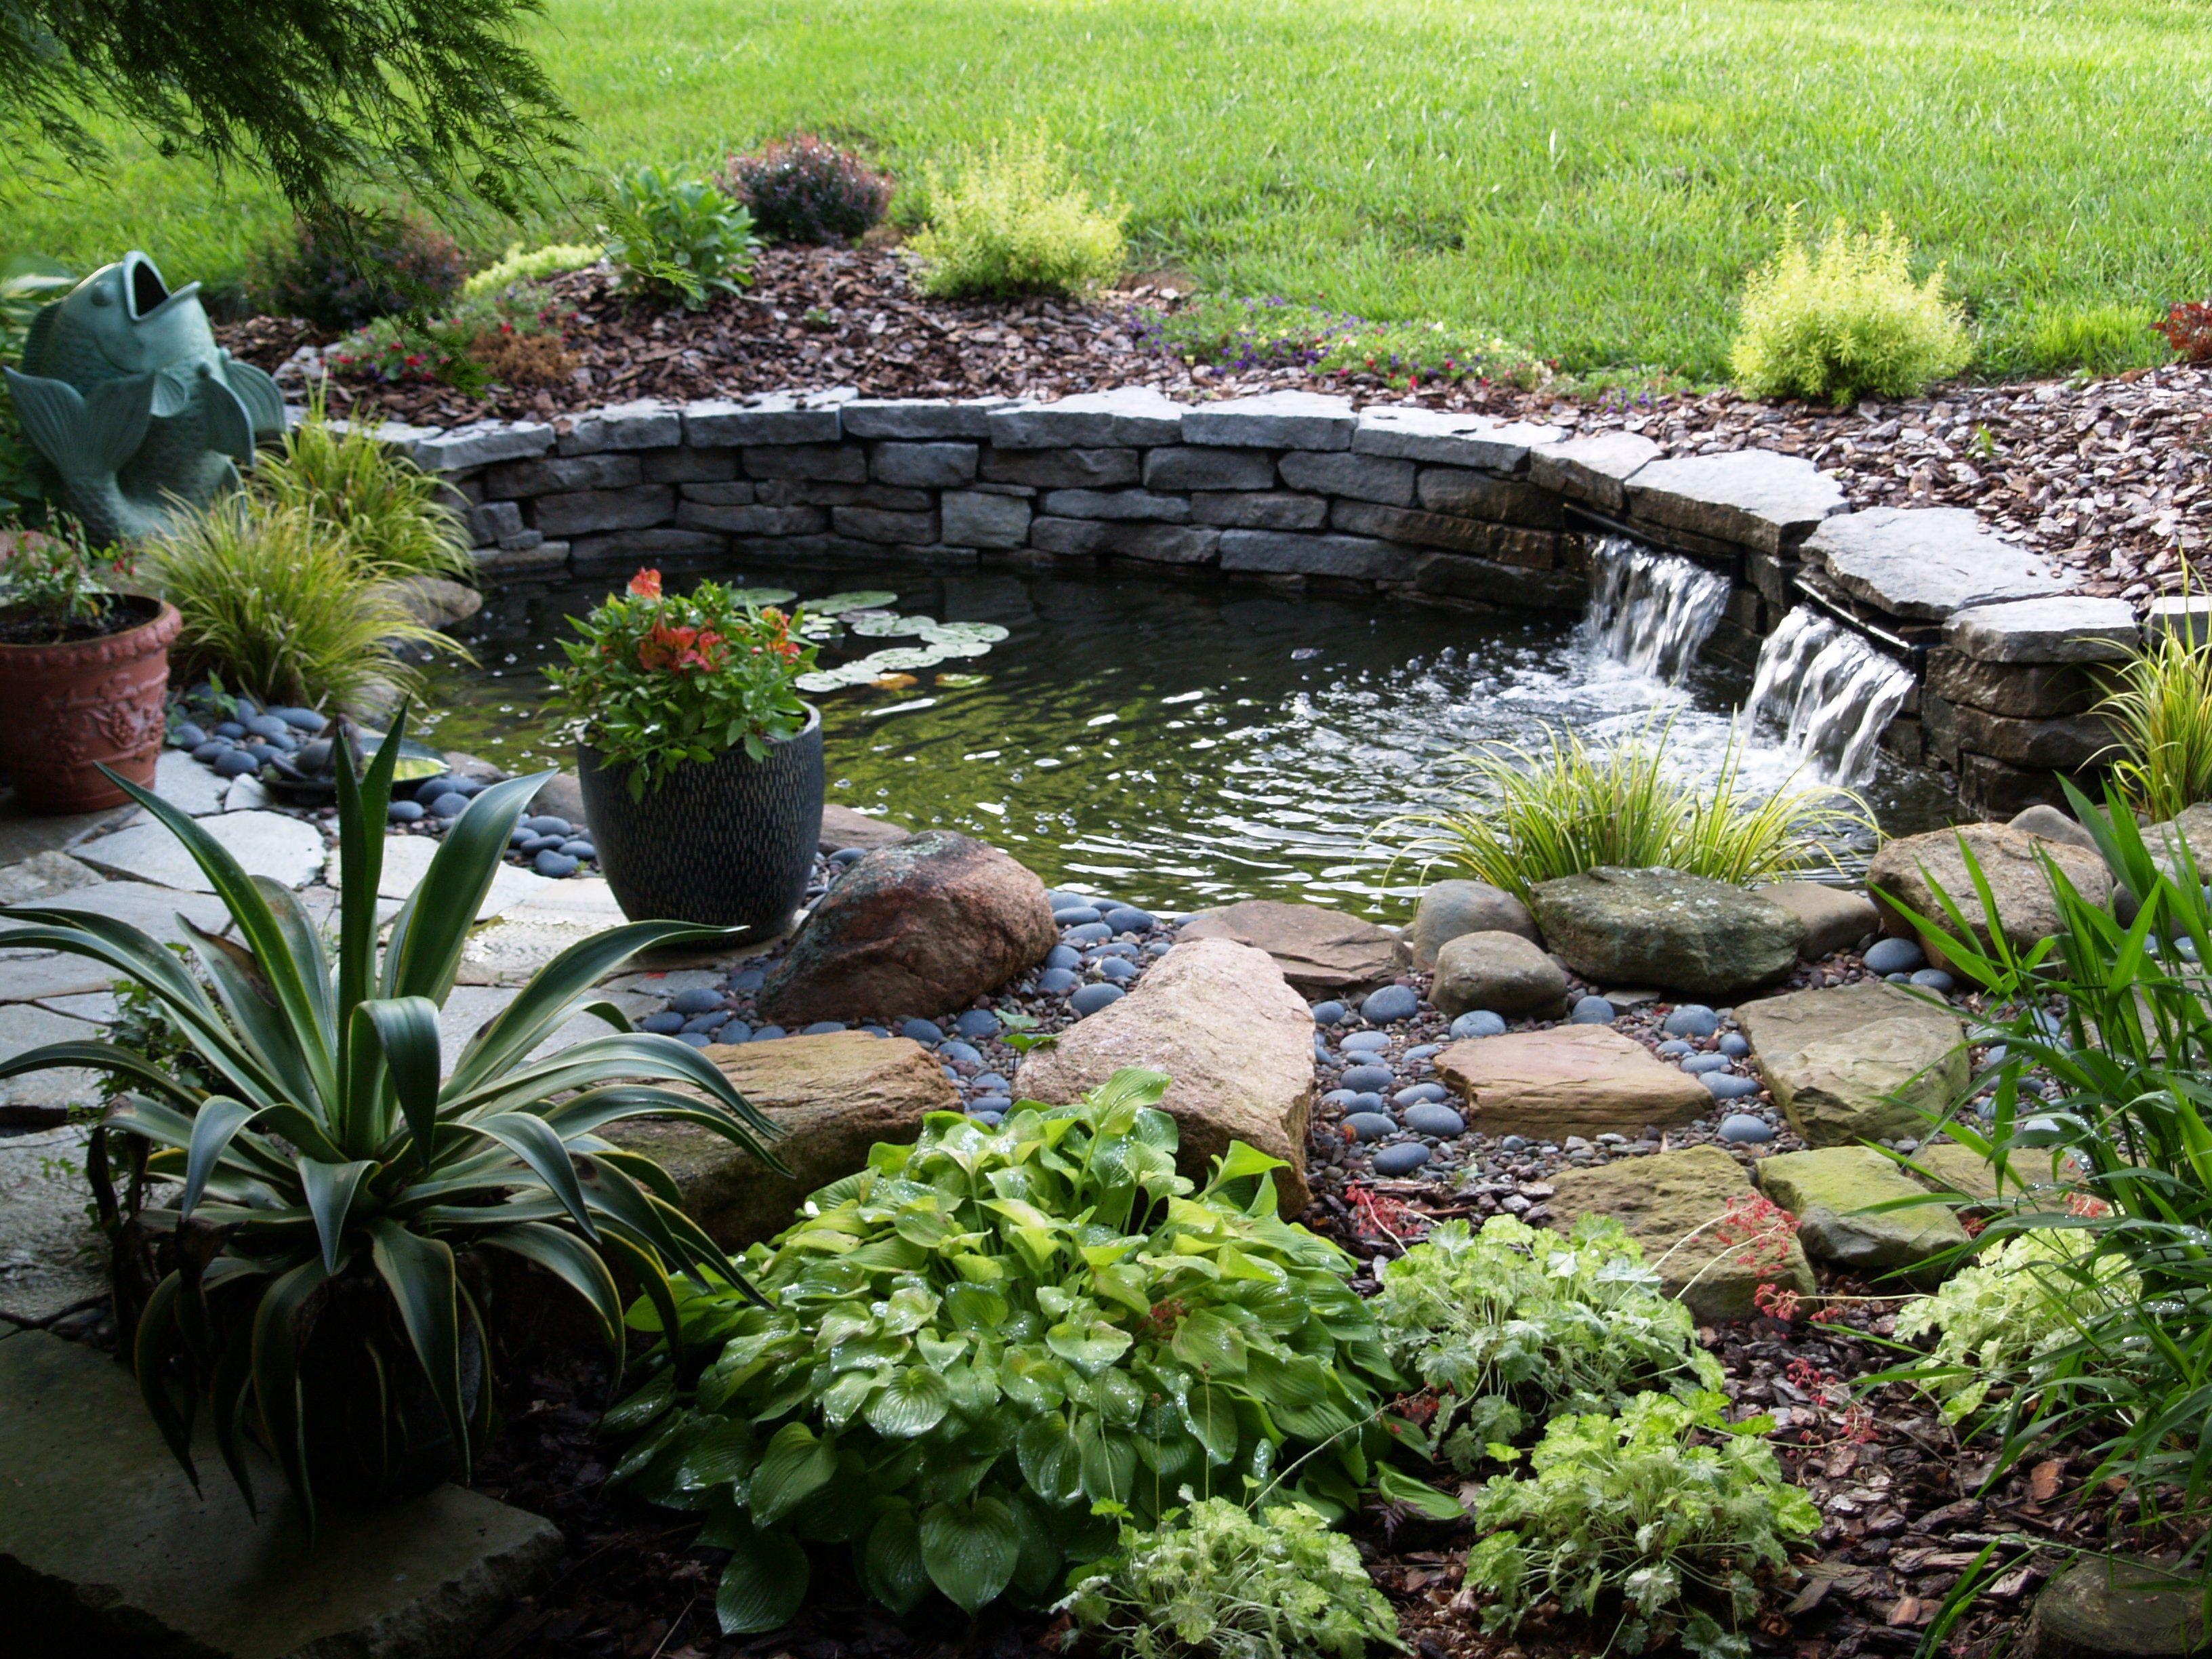 Waterfall Landscape Design Ideas waterfall landscape design Small Backyard Waterfall Ideas Garden Design With Relaxing Garden And Backyard Waterfalls Digsdigs With How To